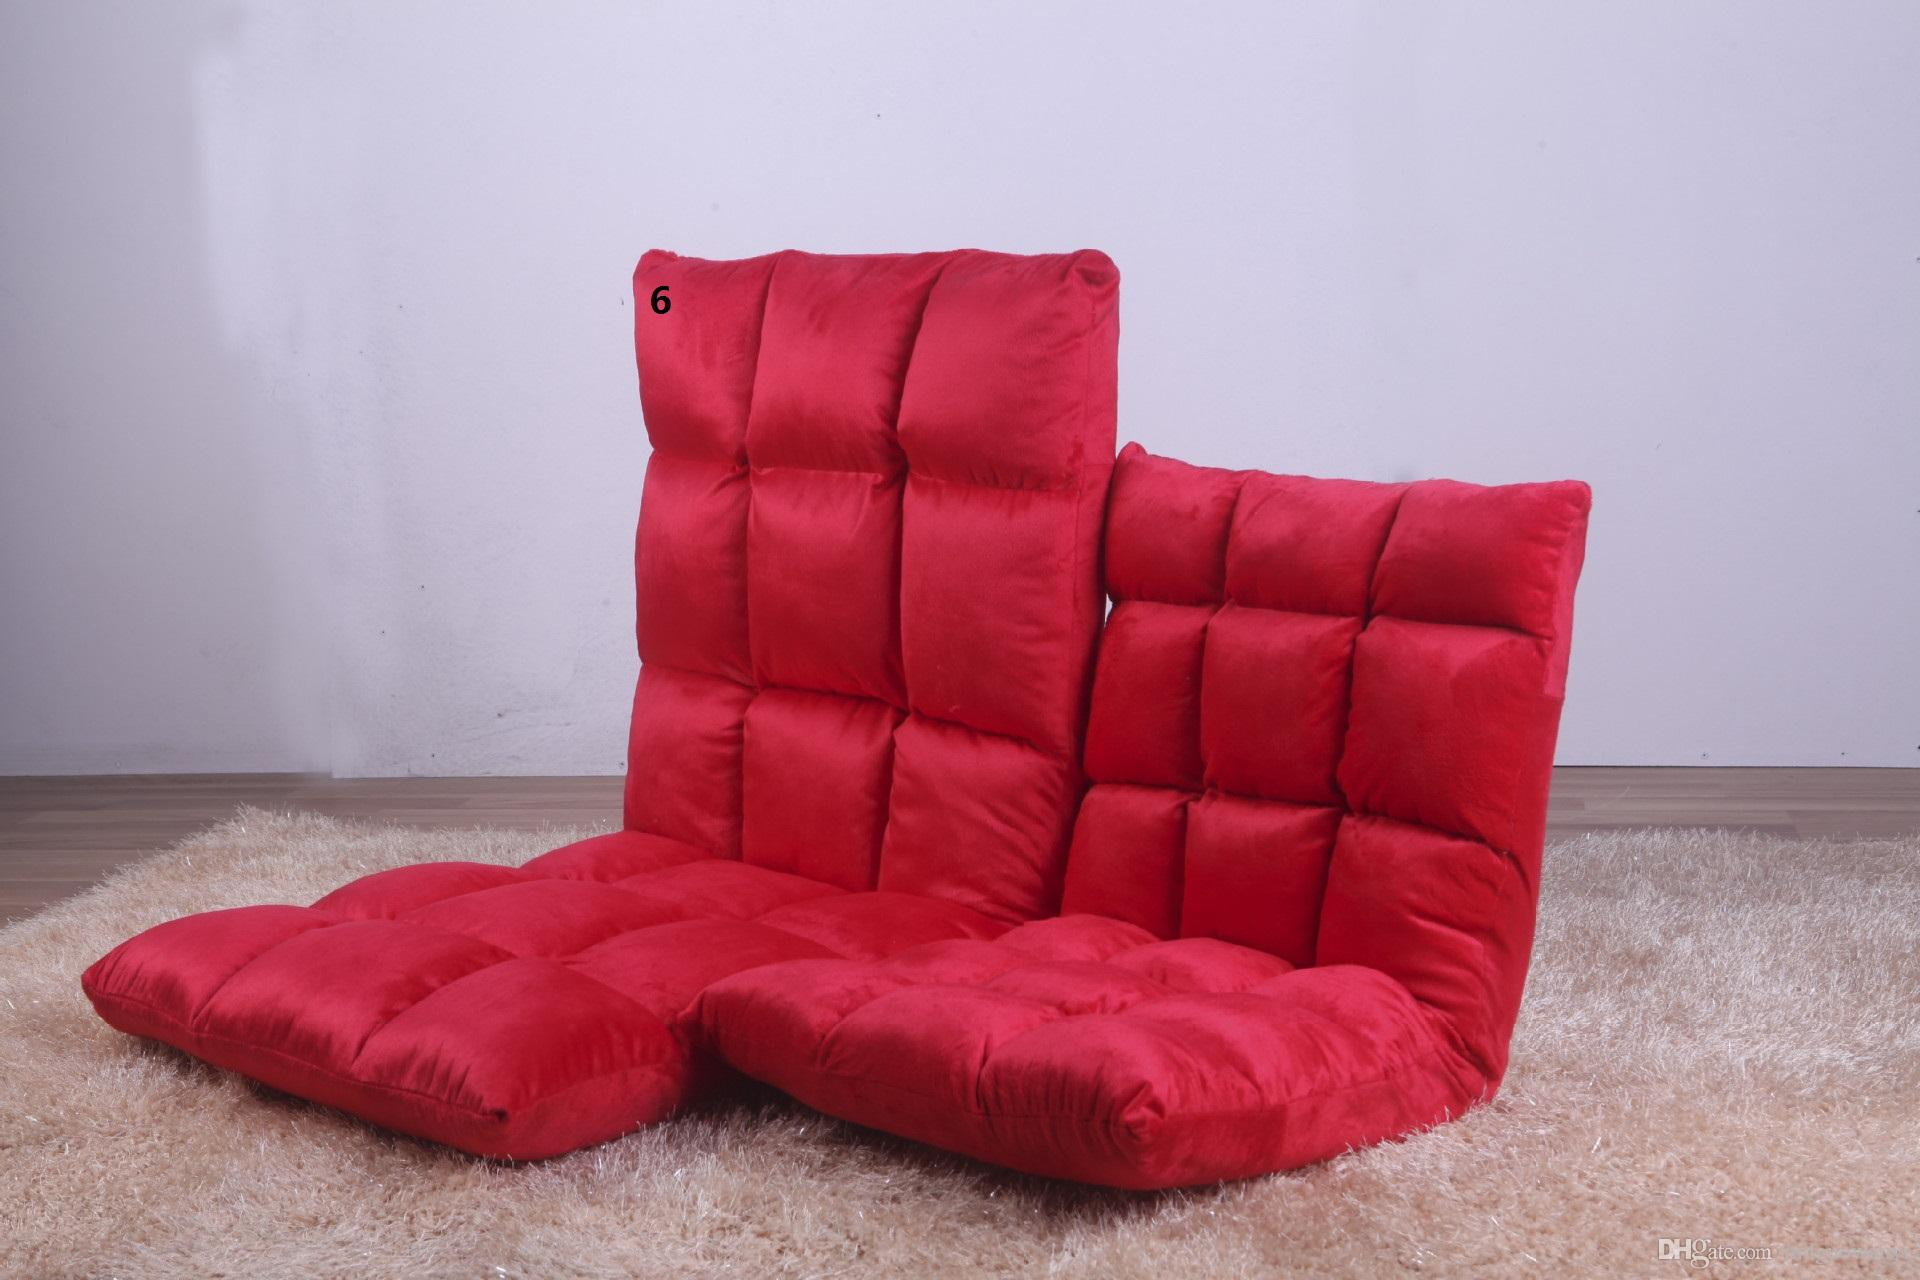 Cool 2019 6 Gears Lazy Sofa Couch Rice Small Single Sofa Chair Folding Bed Floor Chair Window Chair Fashion Mini Sofa From Wanyibao886 13 77 Dhgate Com Machost Co Dining Chair Design Ideas Machostcouk